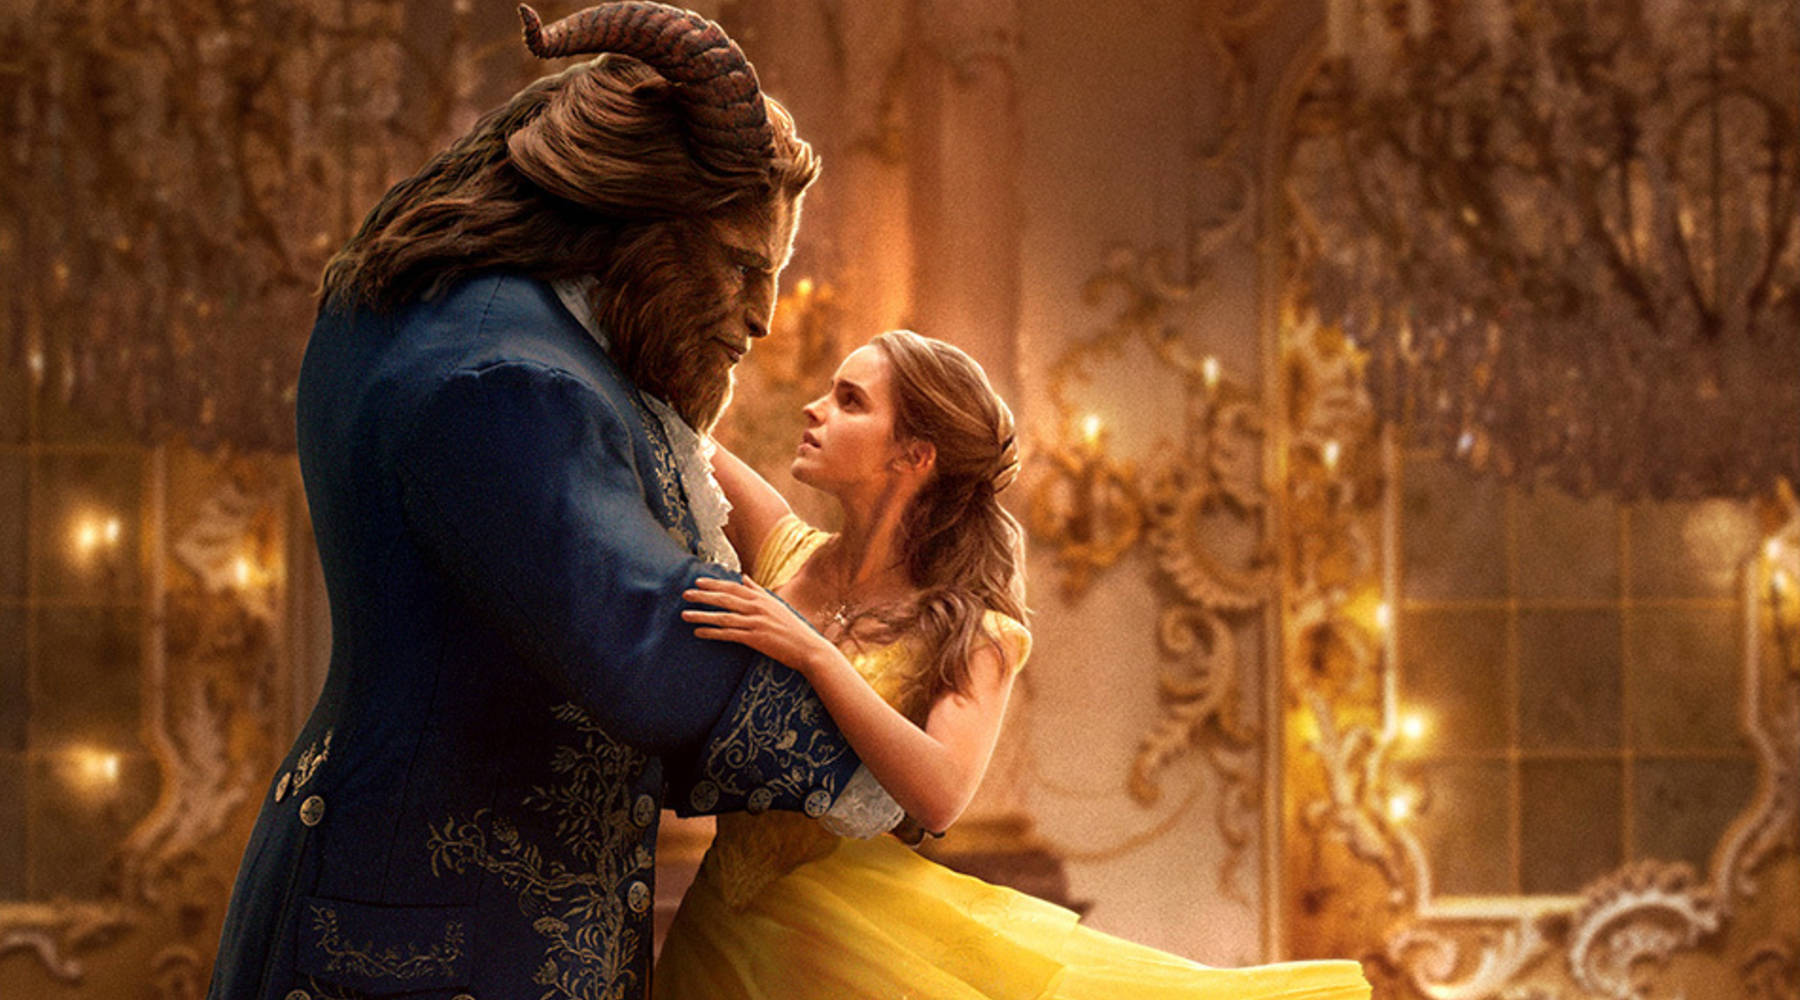 Frozen' got the new 'Beauty and the Beast' made - Marketplace